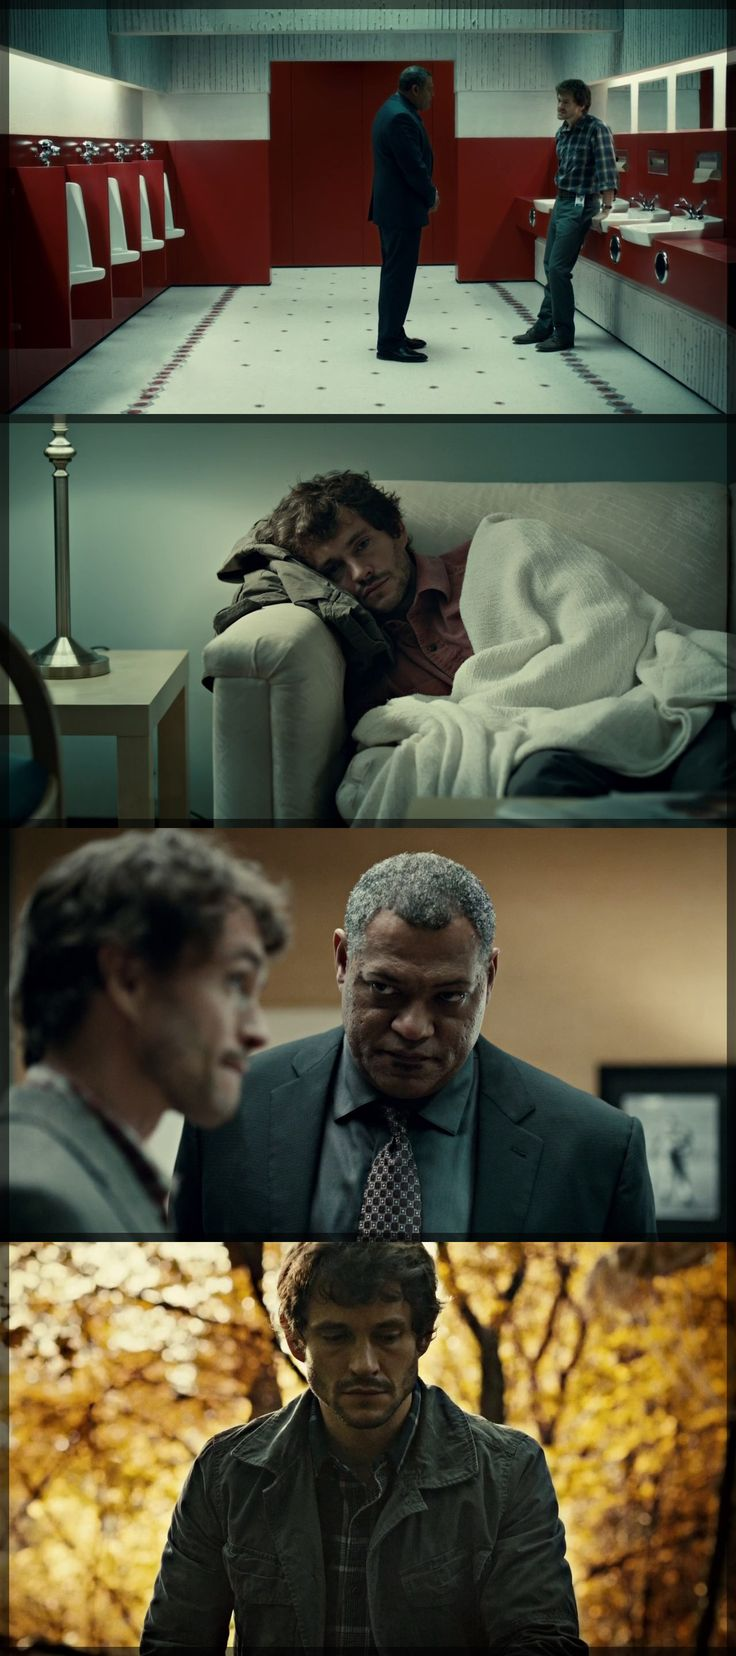 Hannibal's Colour Theory is amazing. each shot looks beautifully crafted!